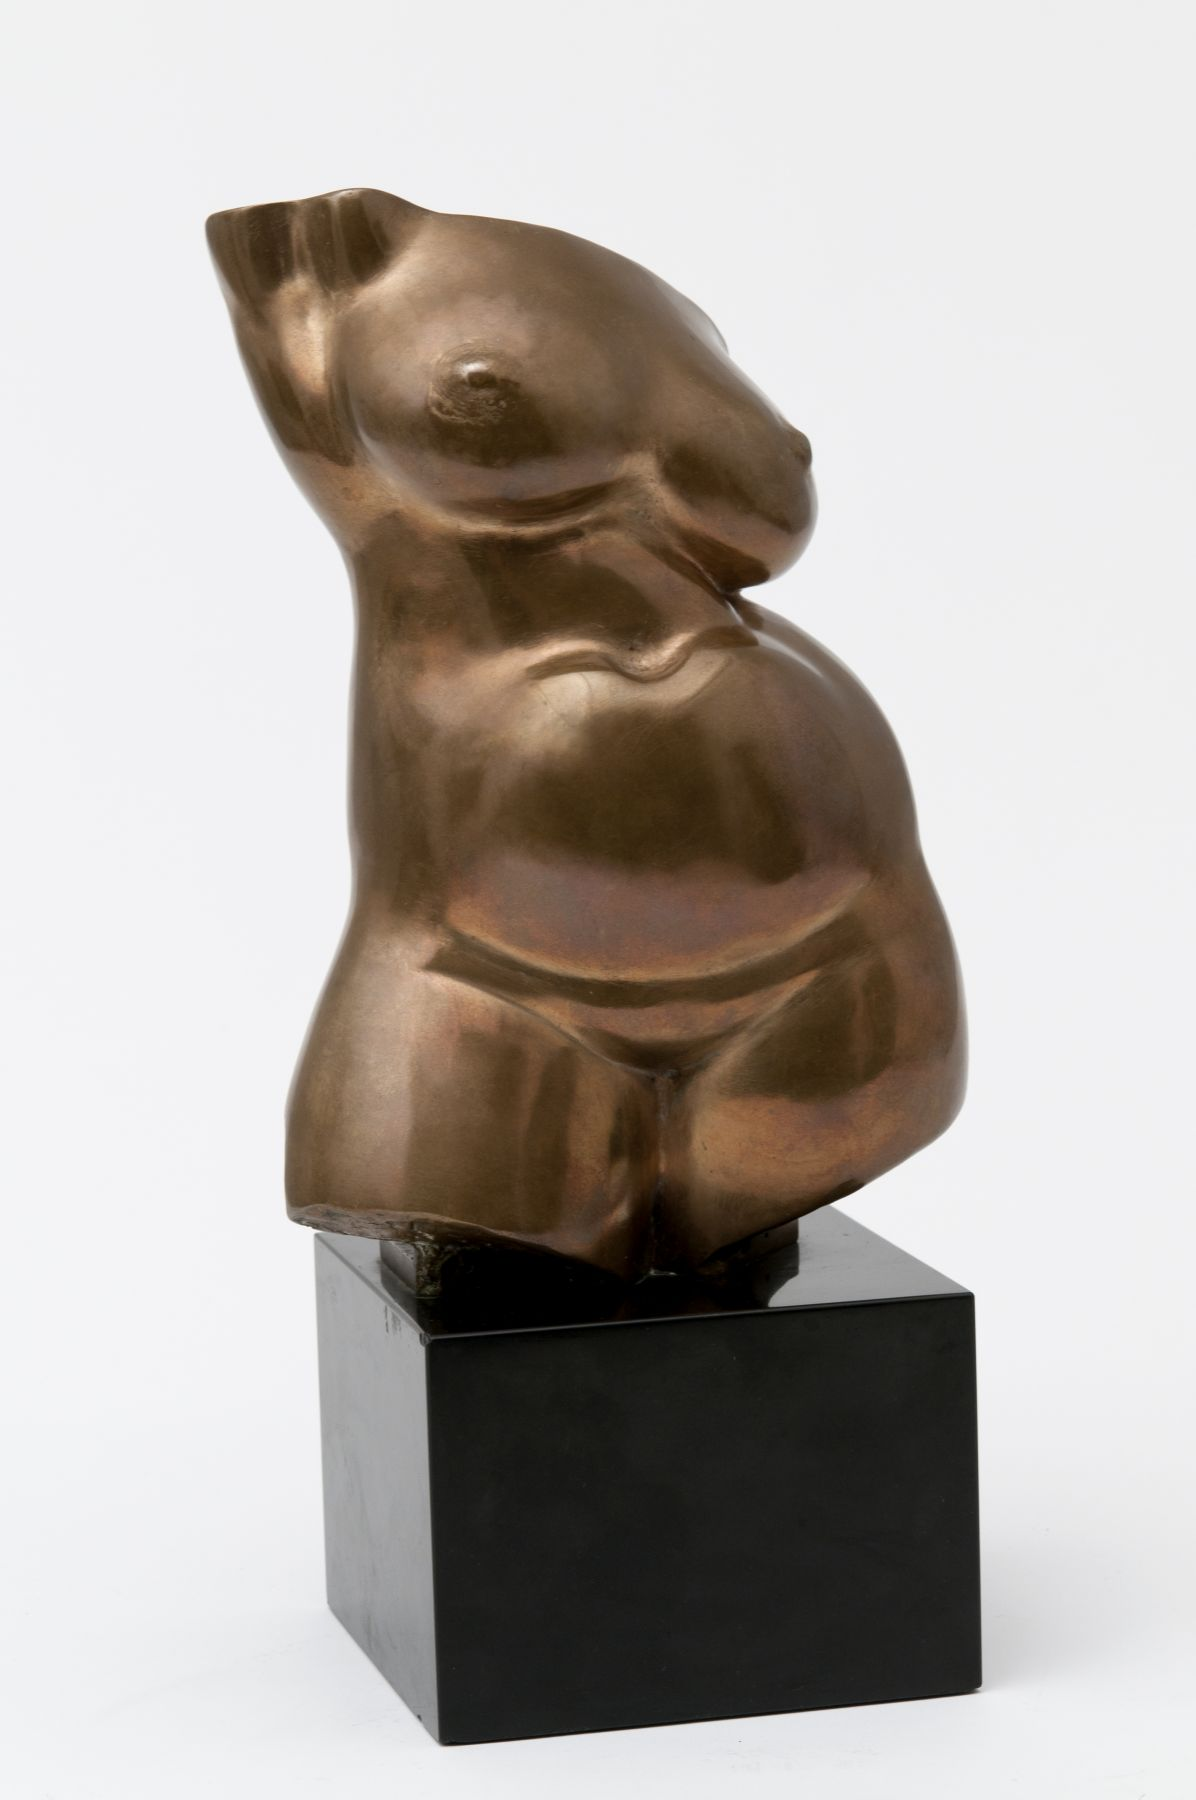 Gaston Lachaise, Classic Torso, 1928, Bronze, 10 3/4 h x 7 3/8 w x 4 1/4 d inches, Edition of 7